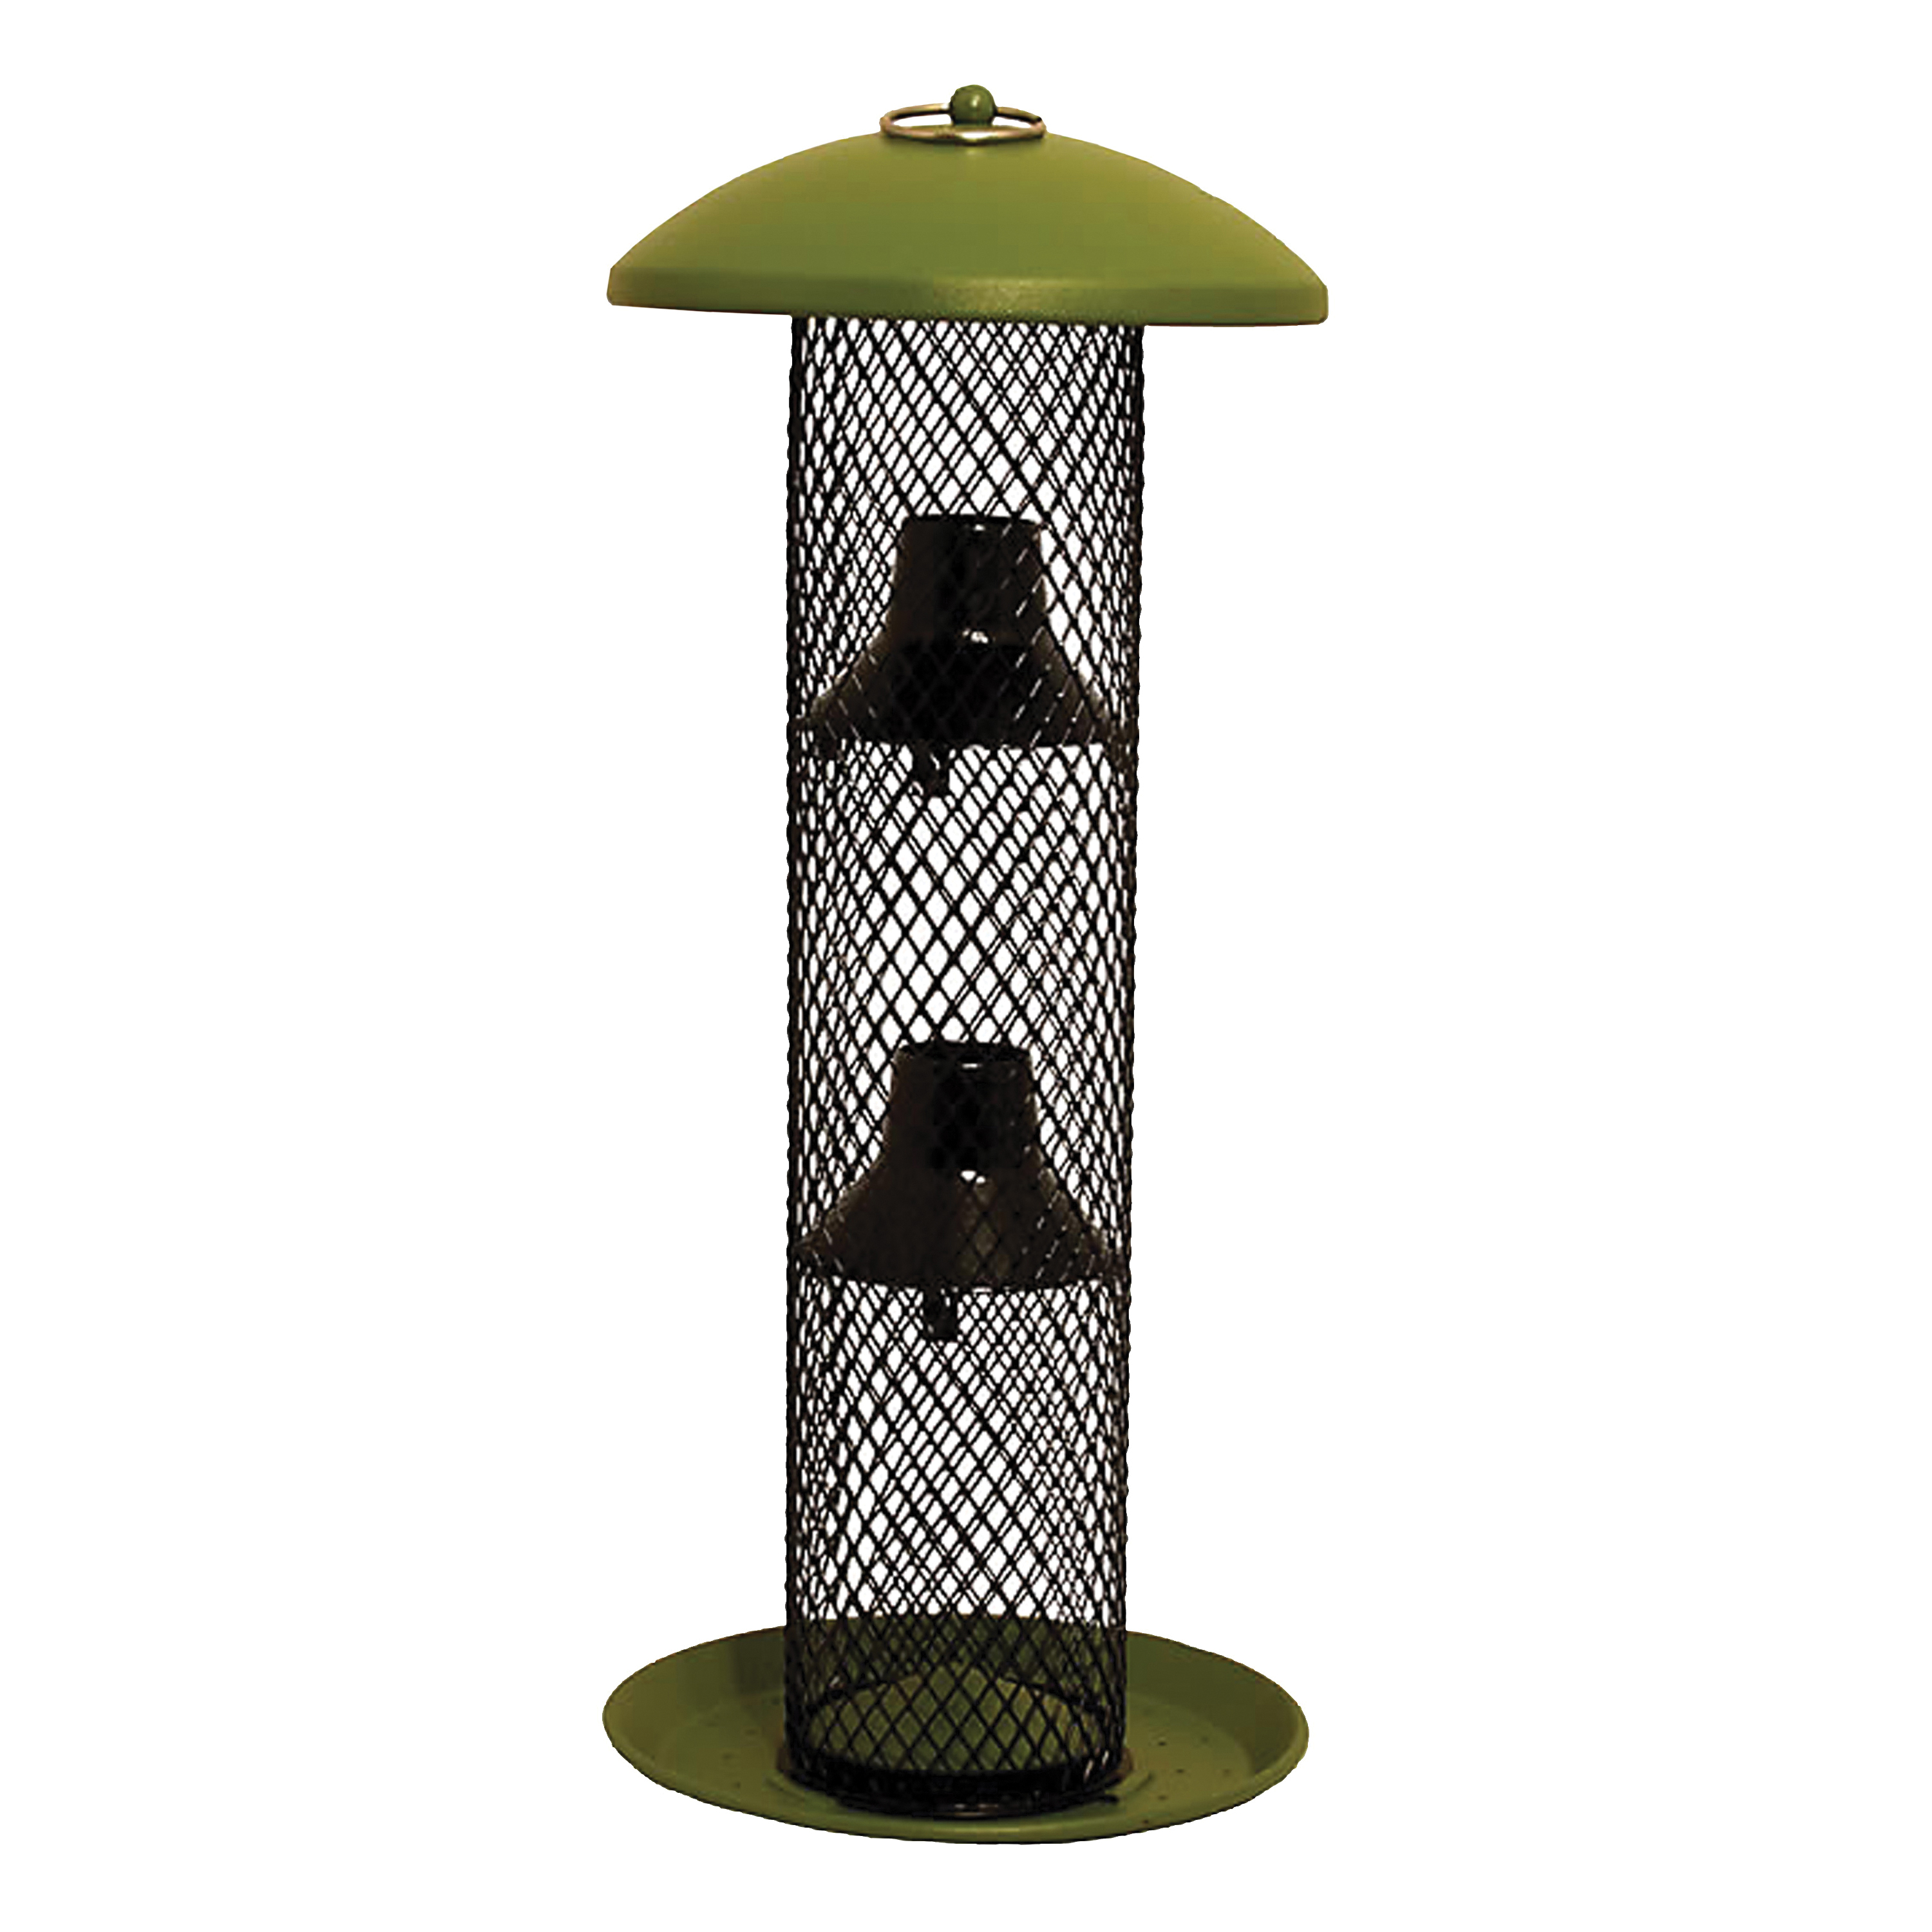 Picture of Perky-Pet NO/NO GSS00347 Wild Bird Feeder, 16-1/2 in H, 1.5 lb, Metal, Green, Powder-Coated, Hanging Mounting